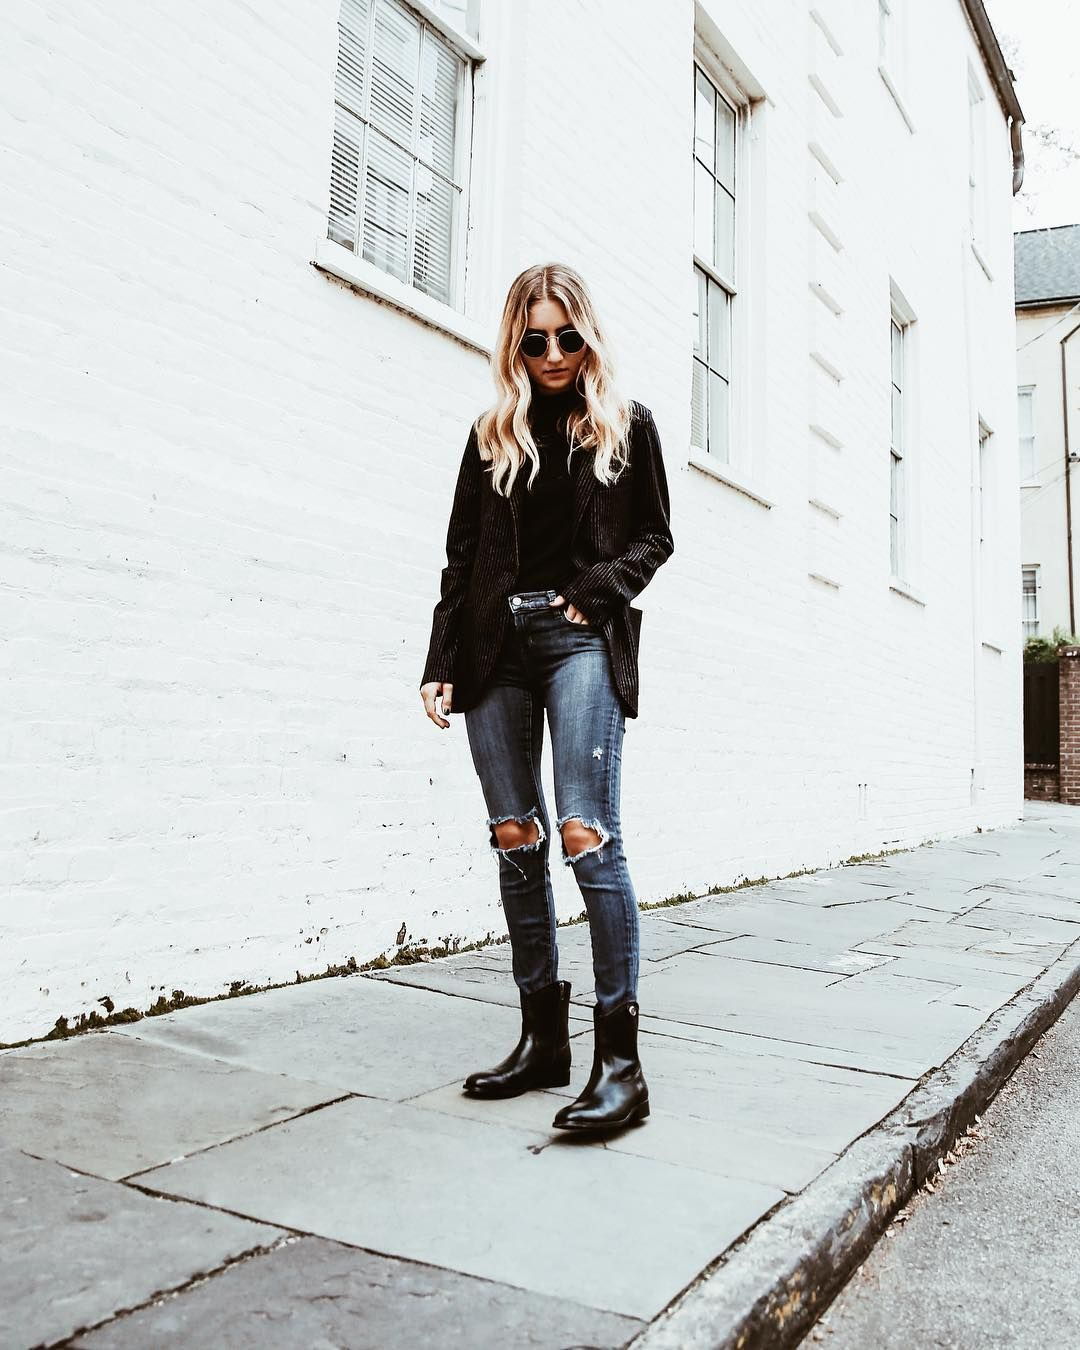 8bfef59e889 Classic + stylish   lilysykora wears the Melissa Button 2 Boots ...